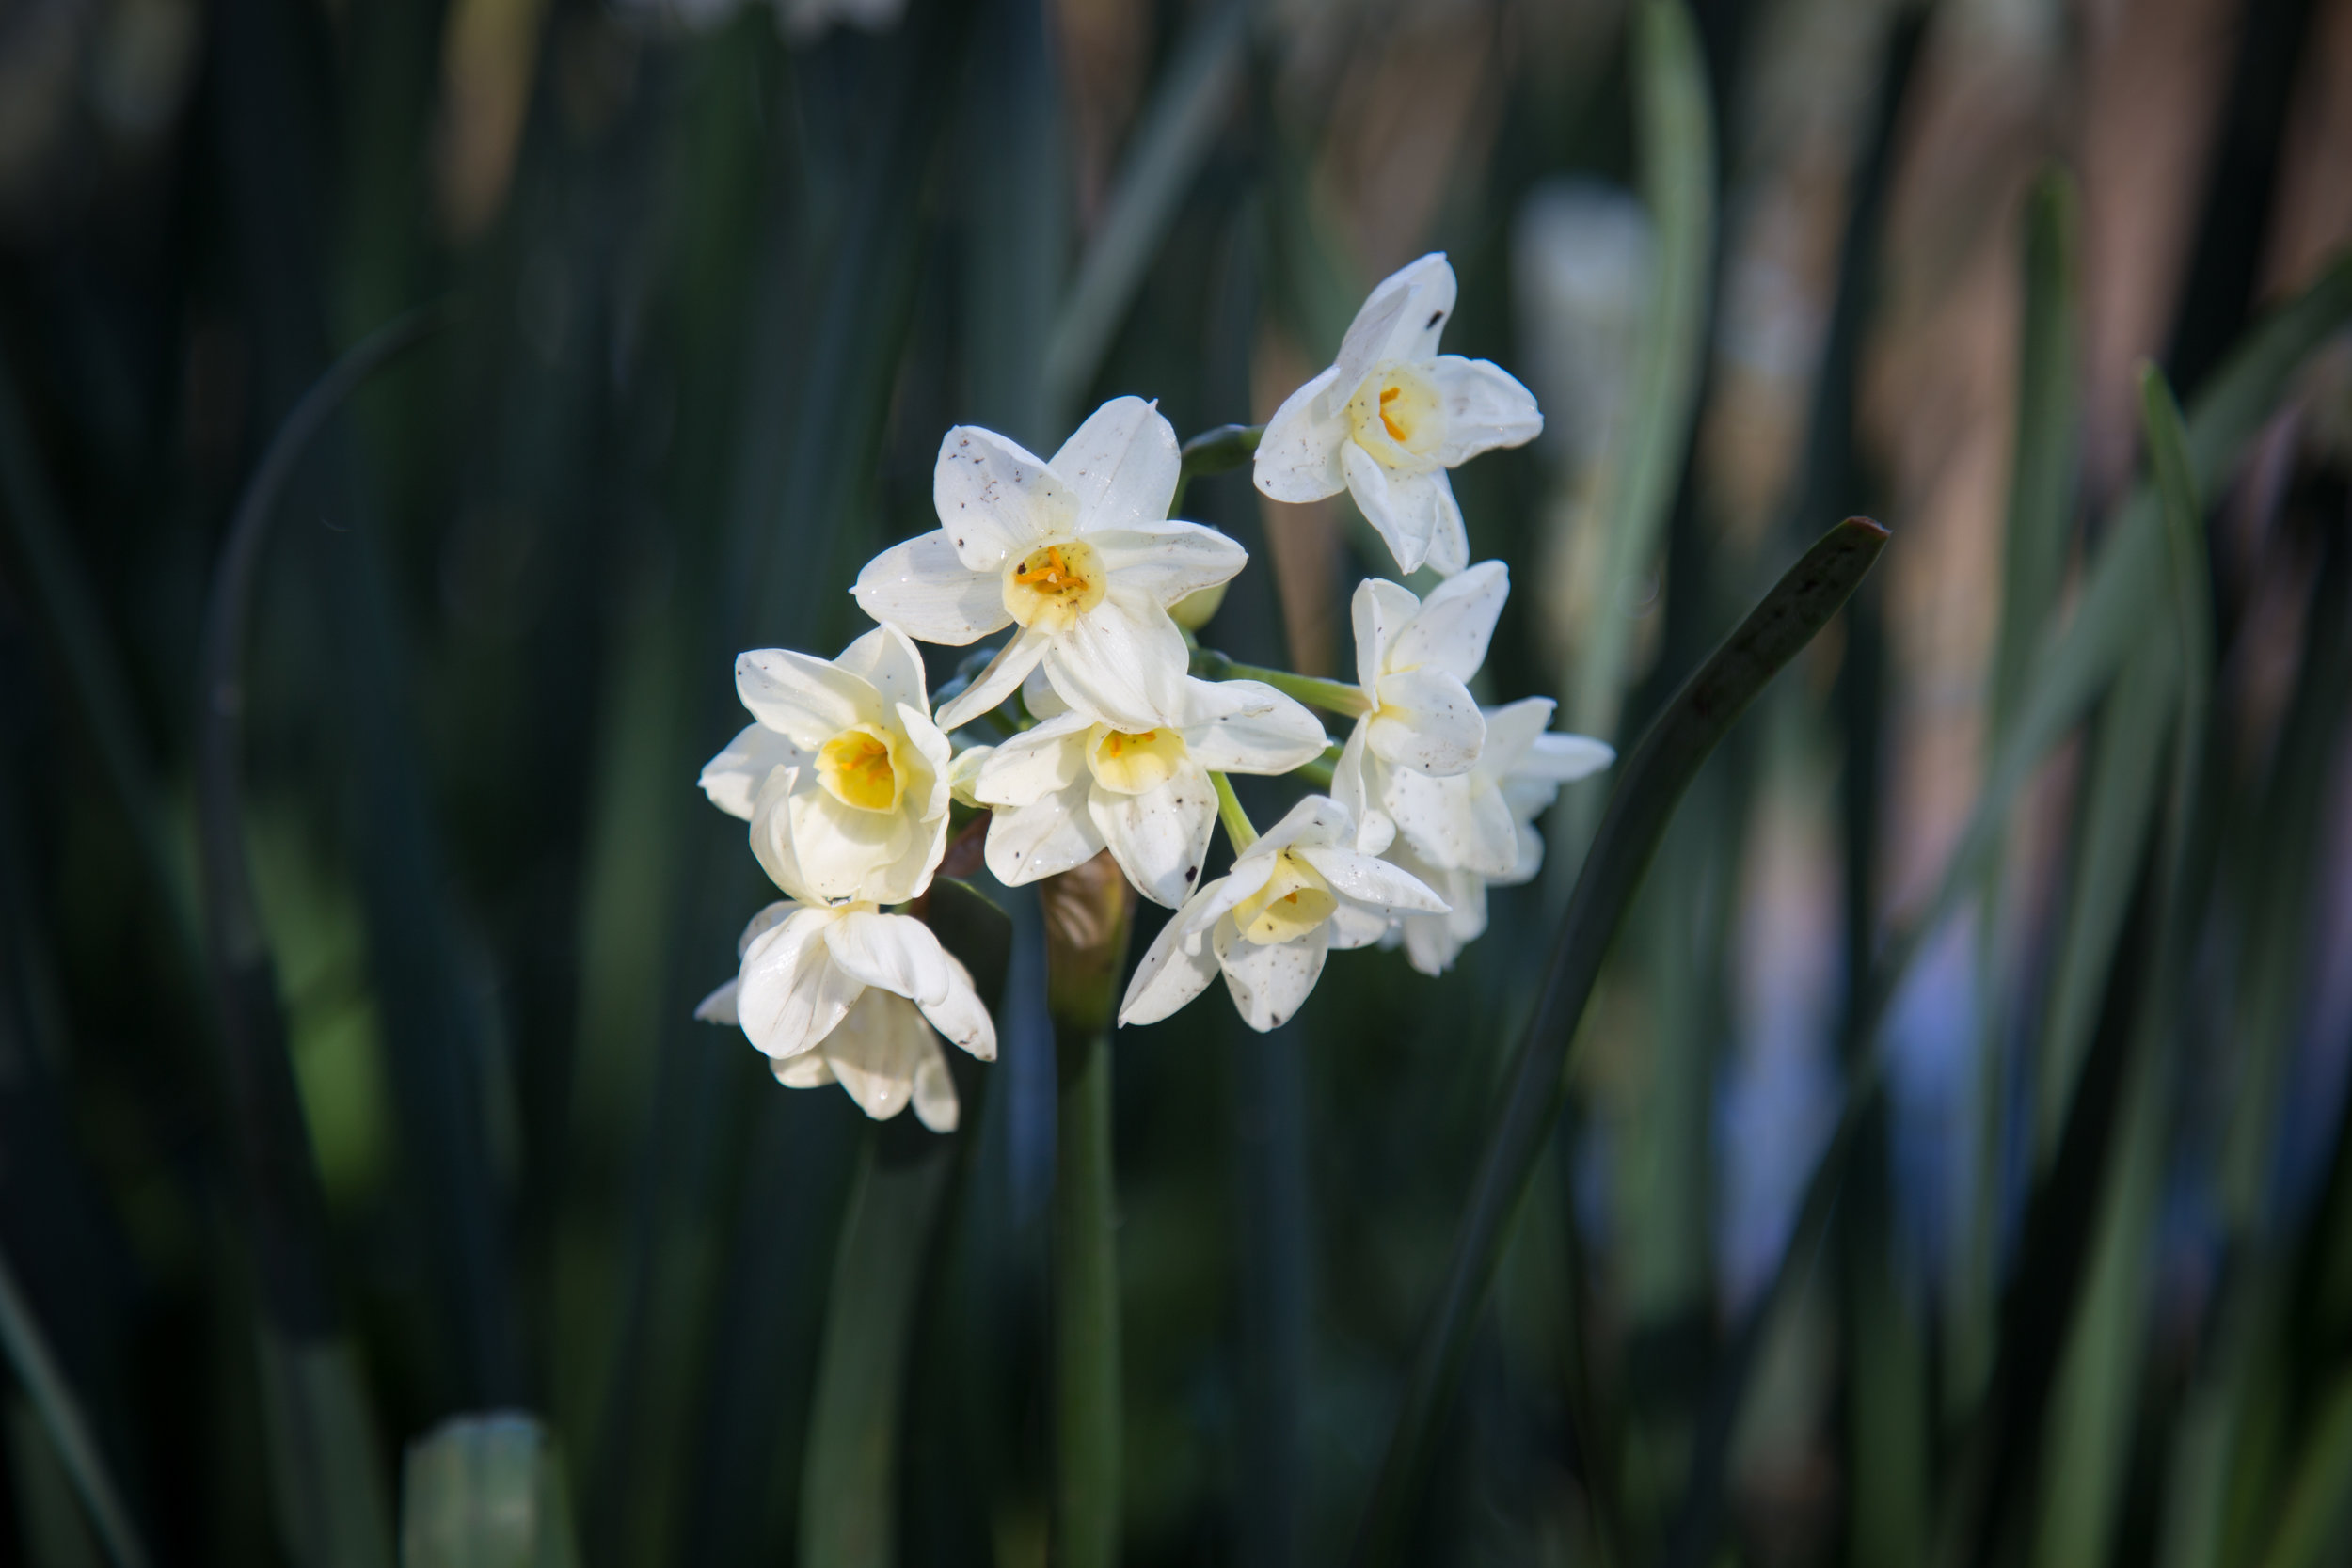 Narcissus flowers near the meadow.